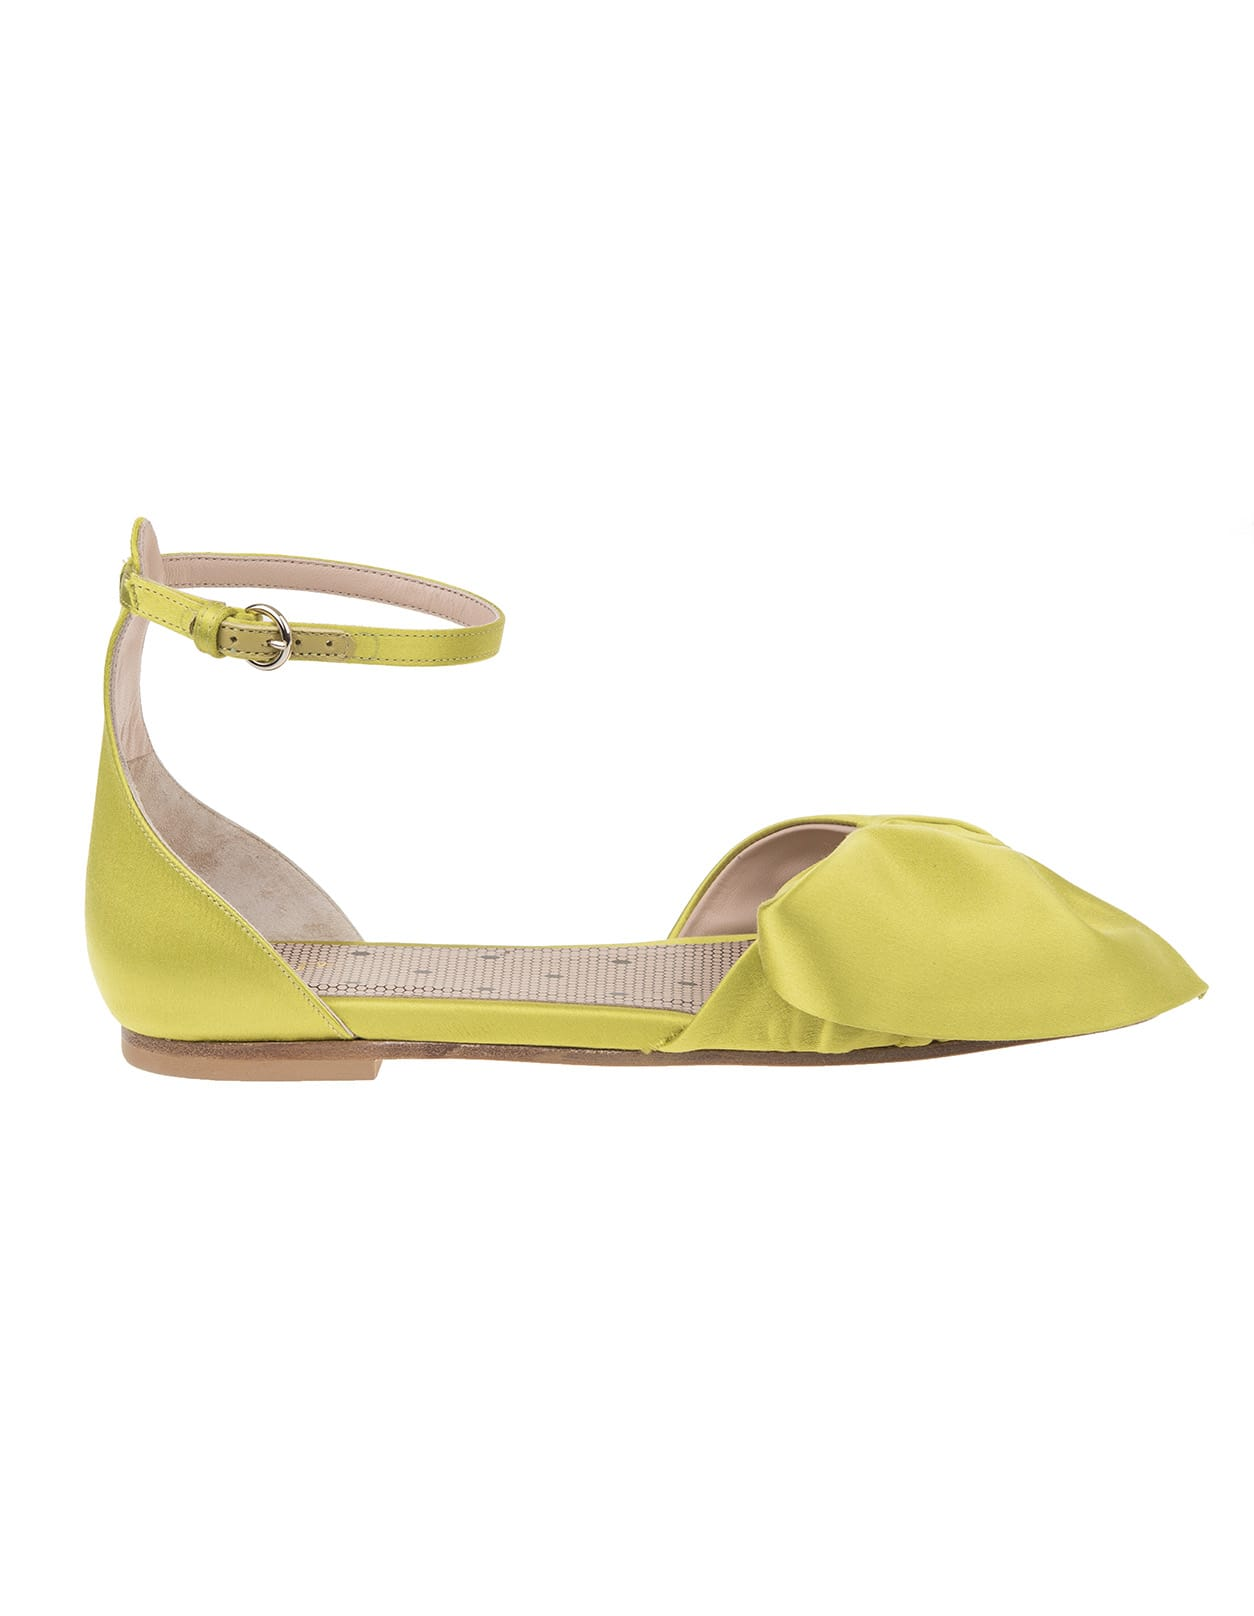 Buy RED Valentino Satin Sandals online, shop RED Valentino shoes with free shipping